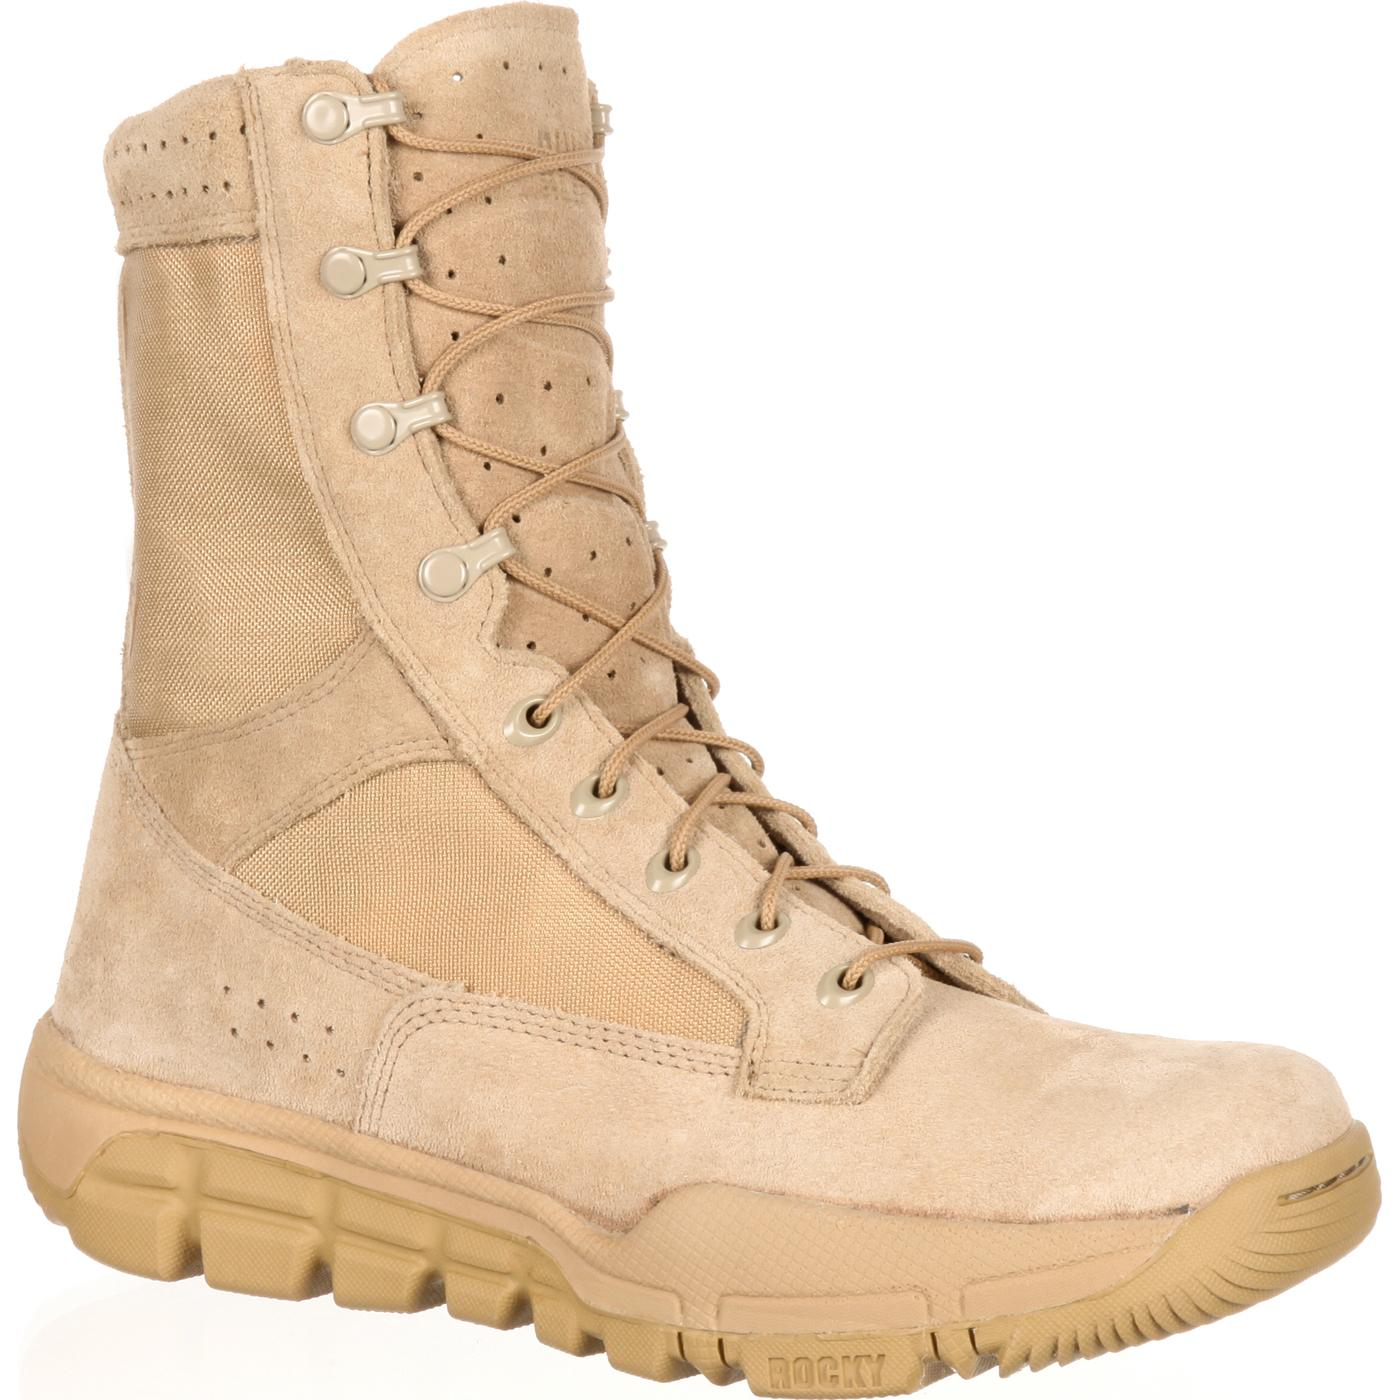 Rocky: Lightweight Coyote Brown Commercial Military Boot